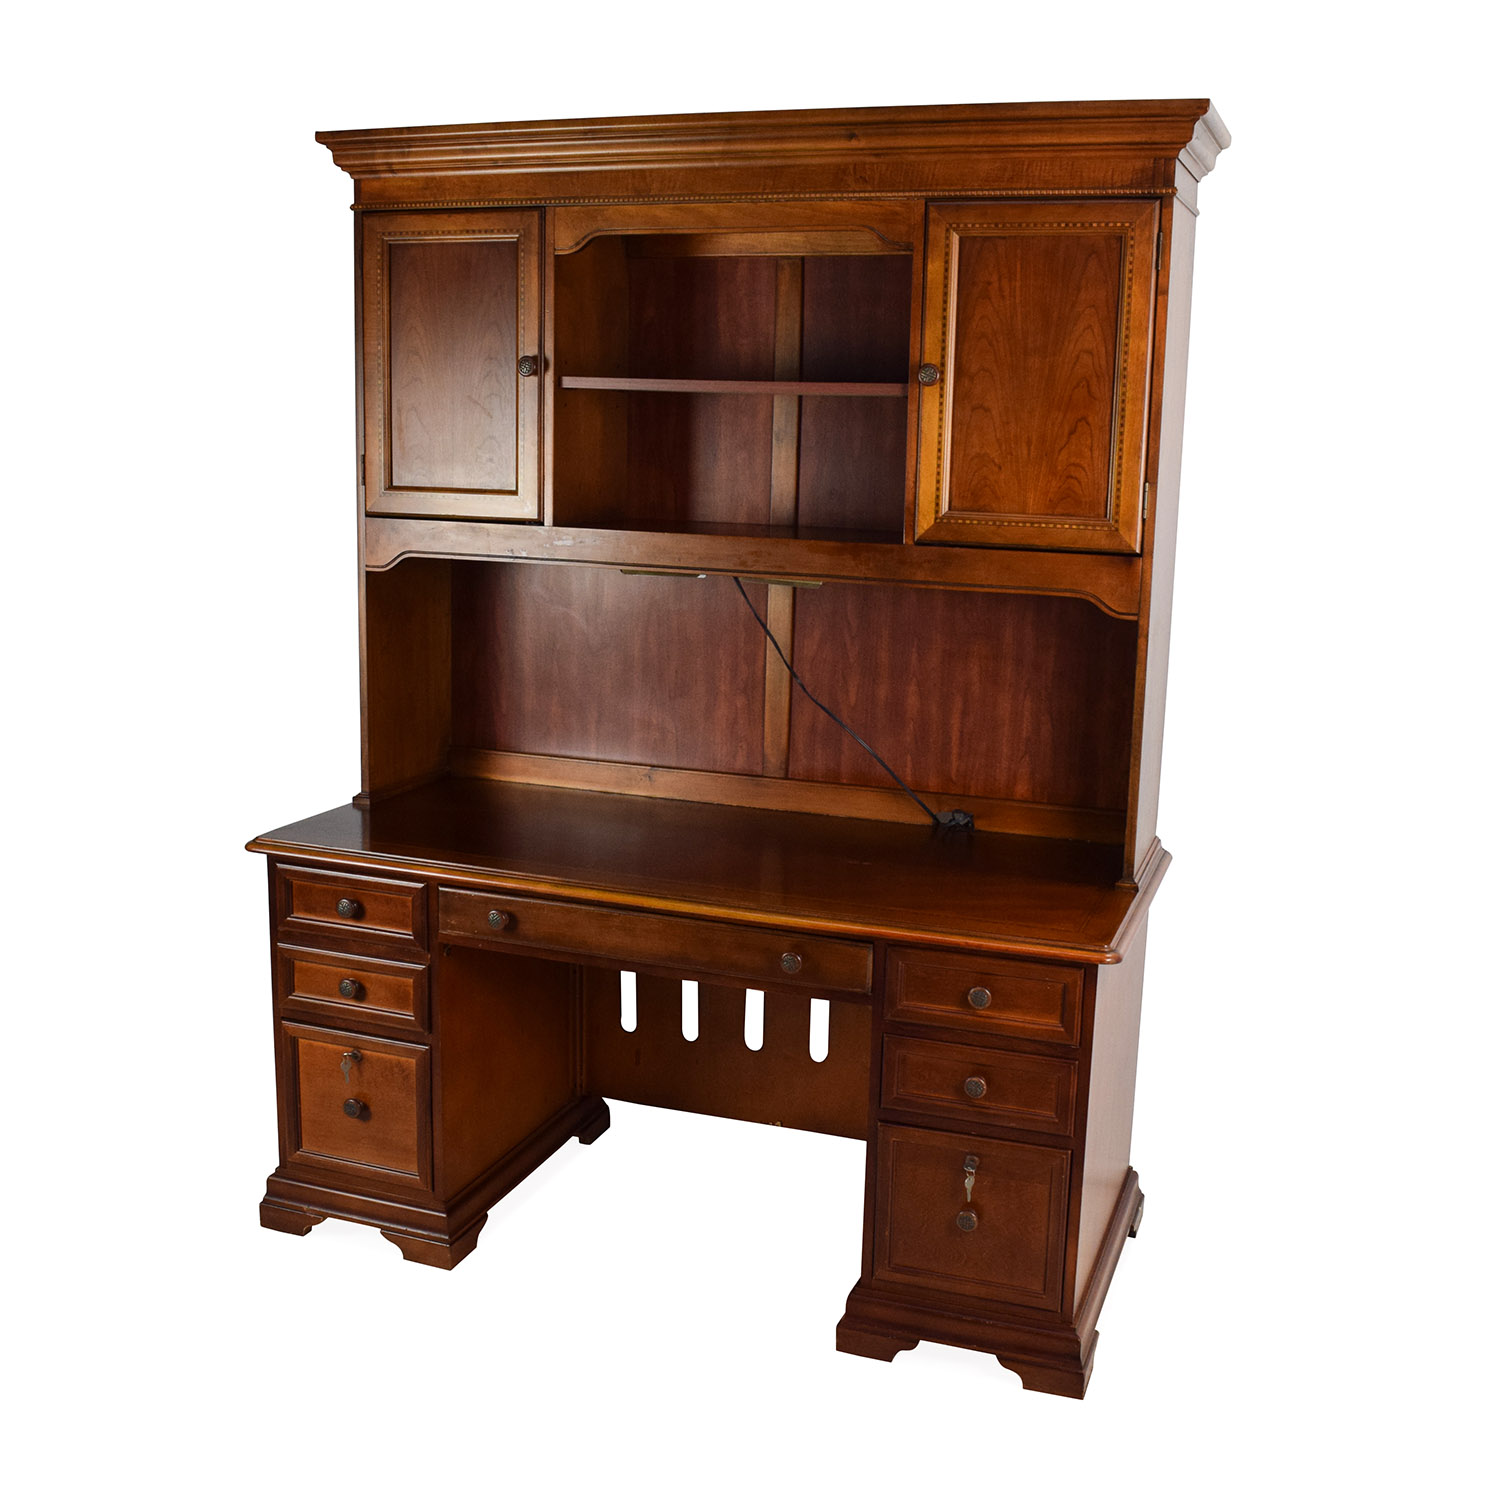 Off hammary furniture wooden desk